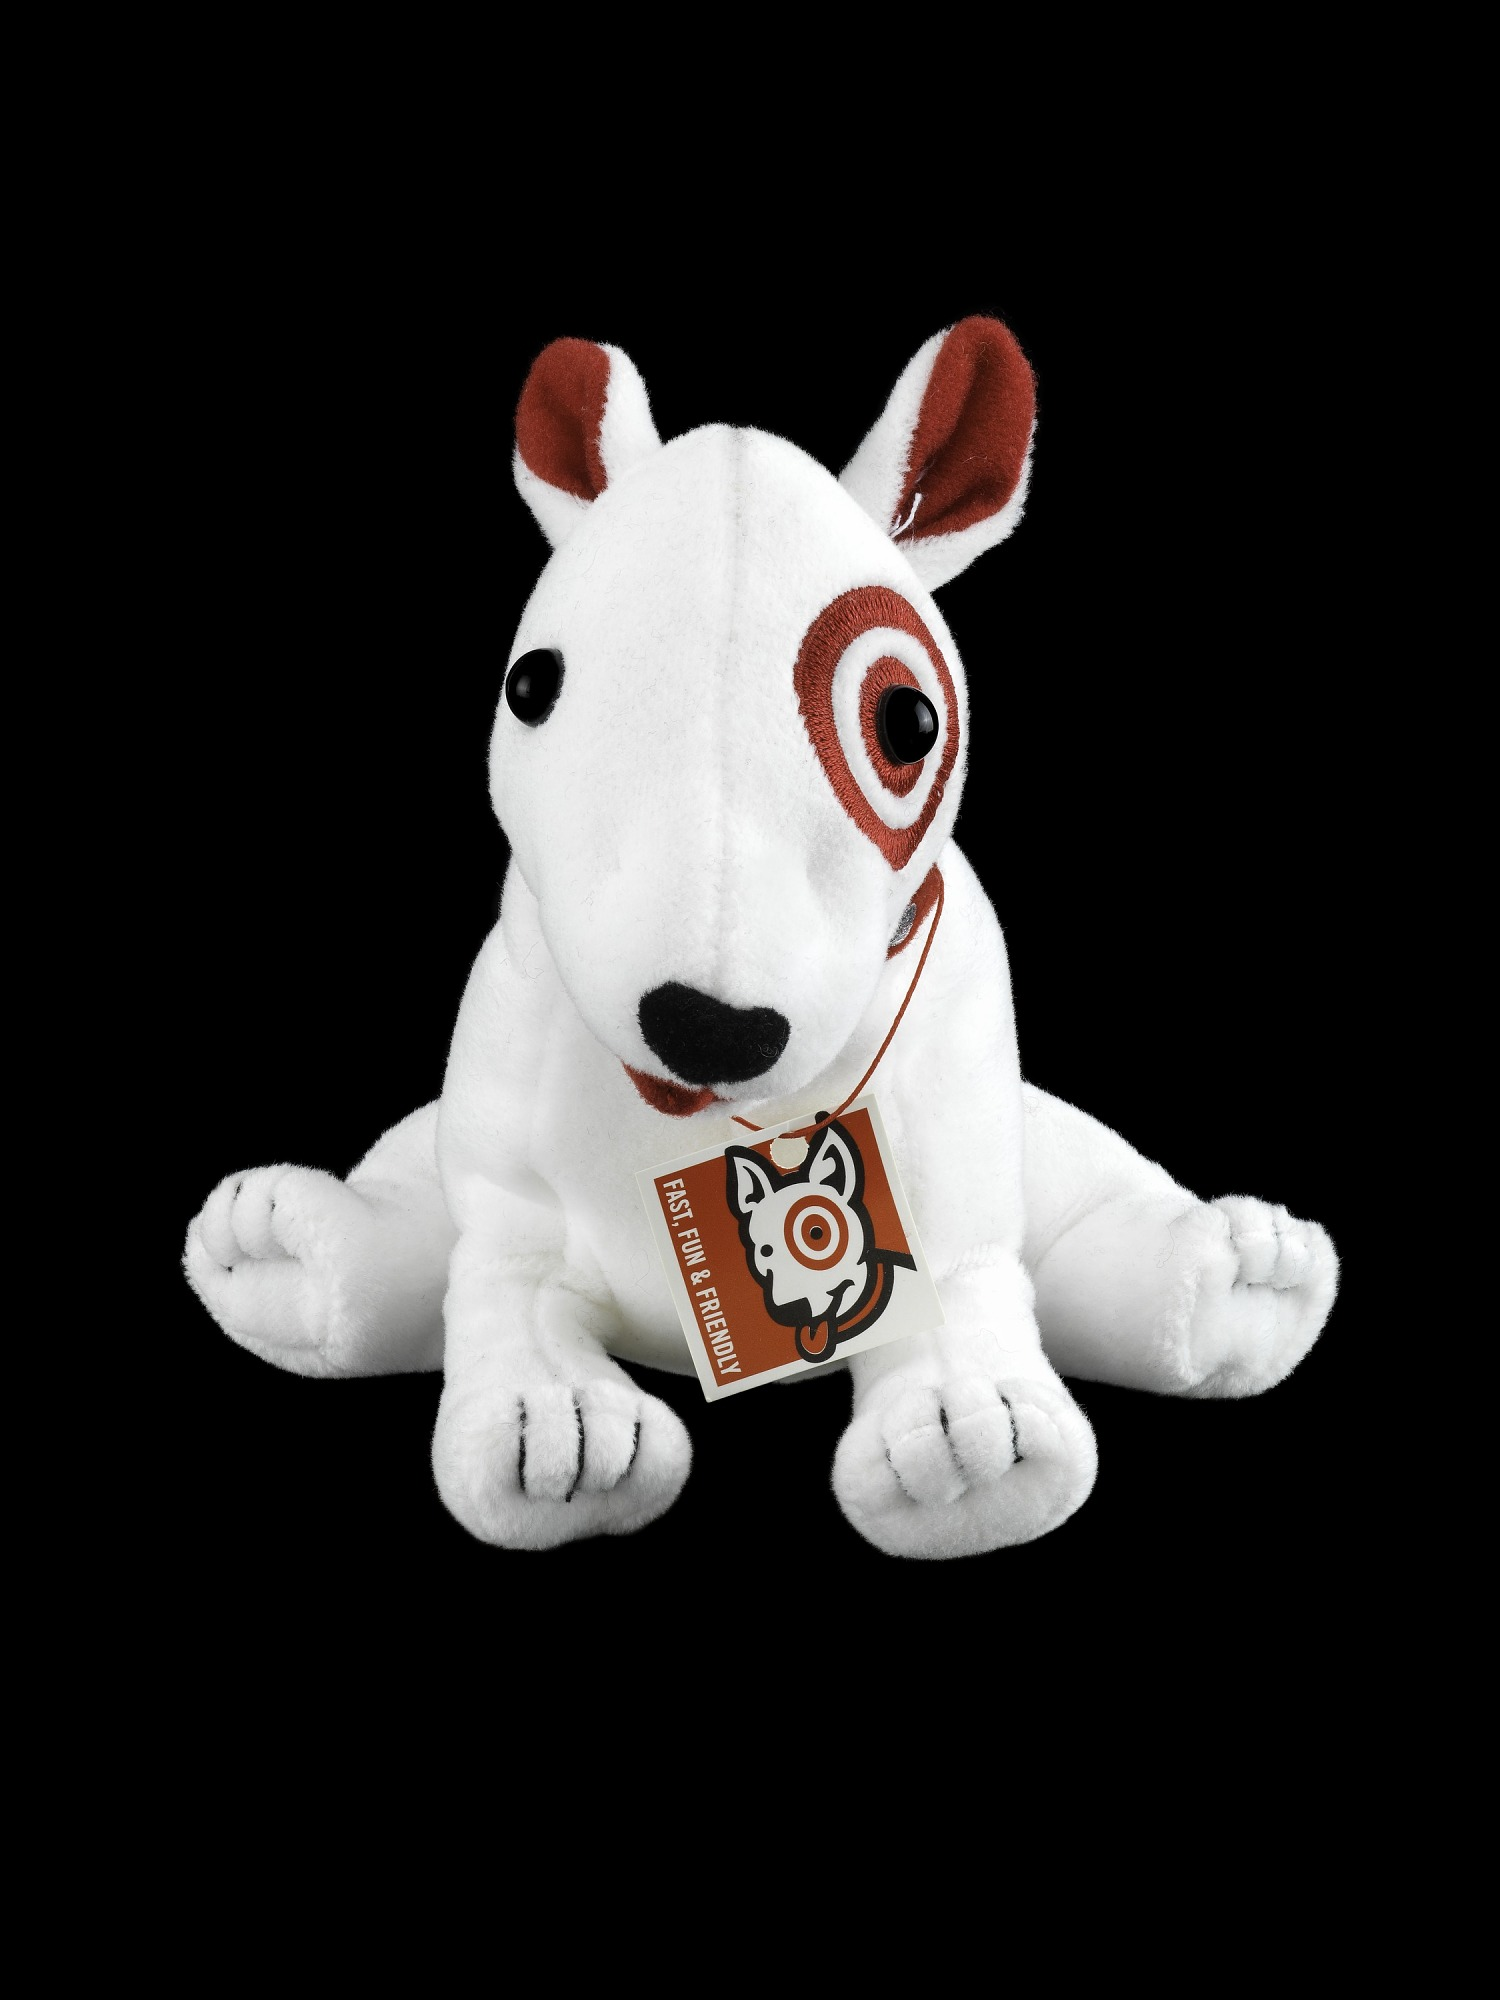 Target Dog Plush Toy National Museum Of American History